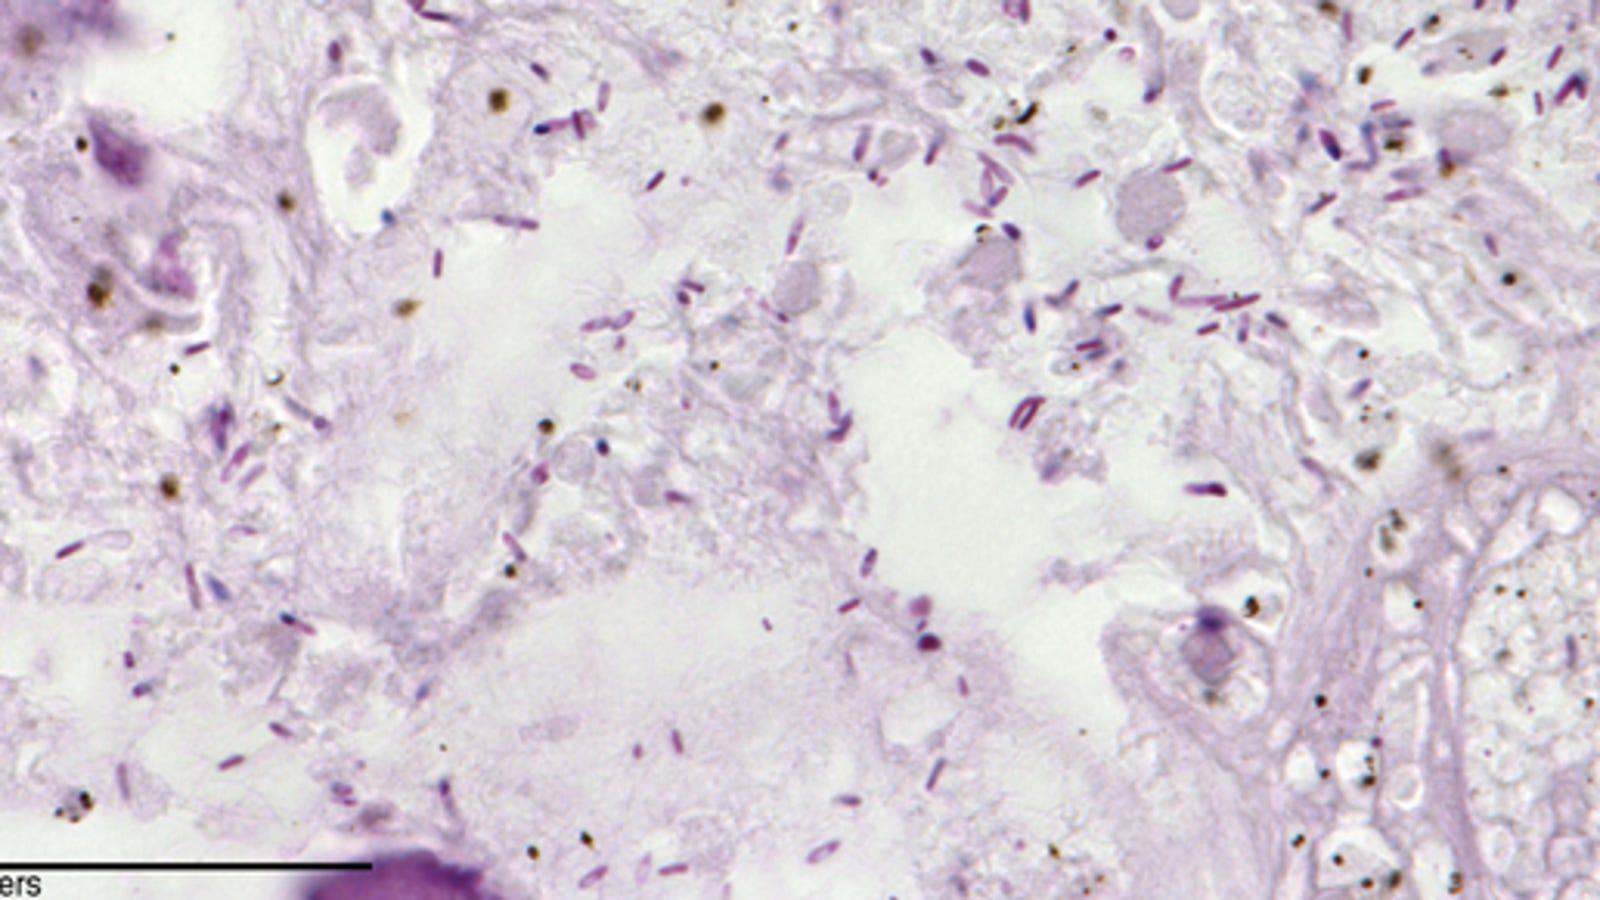 A Common Bacteria Can Be Injected Directly Into Tumors to Fight Cancer